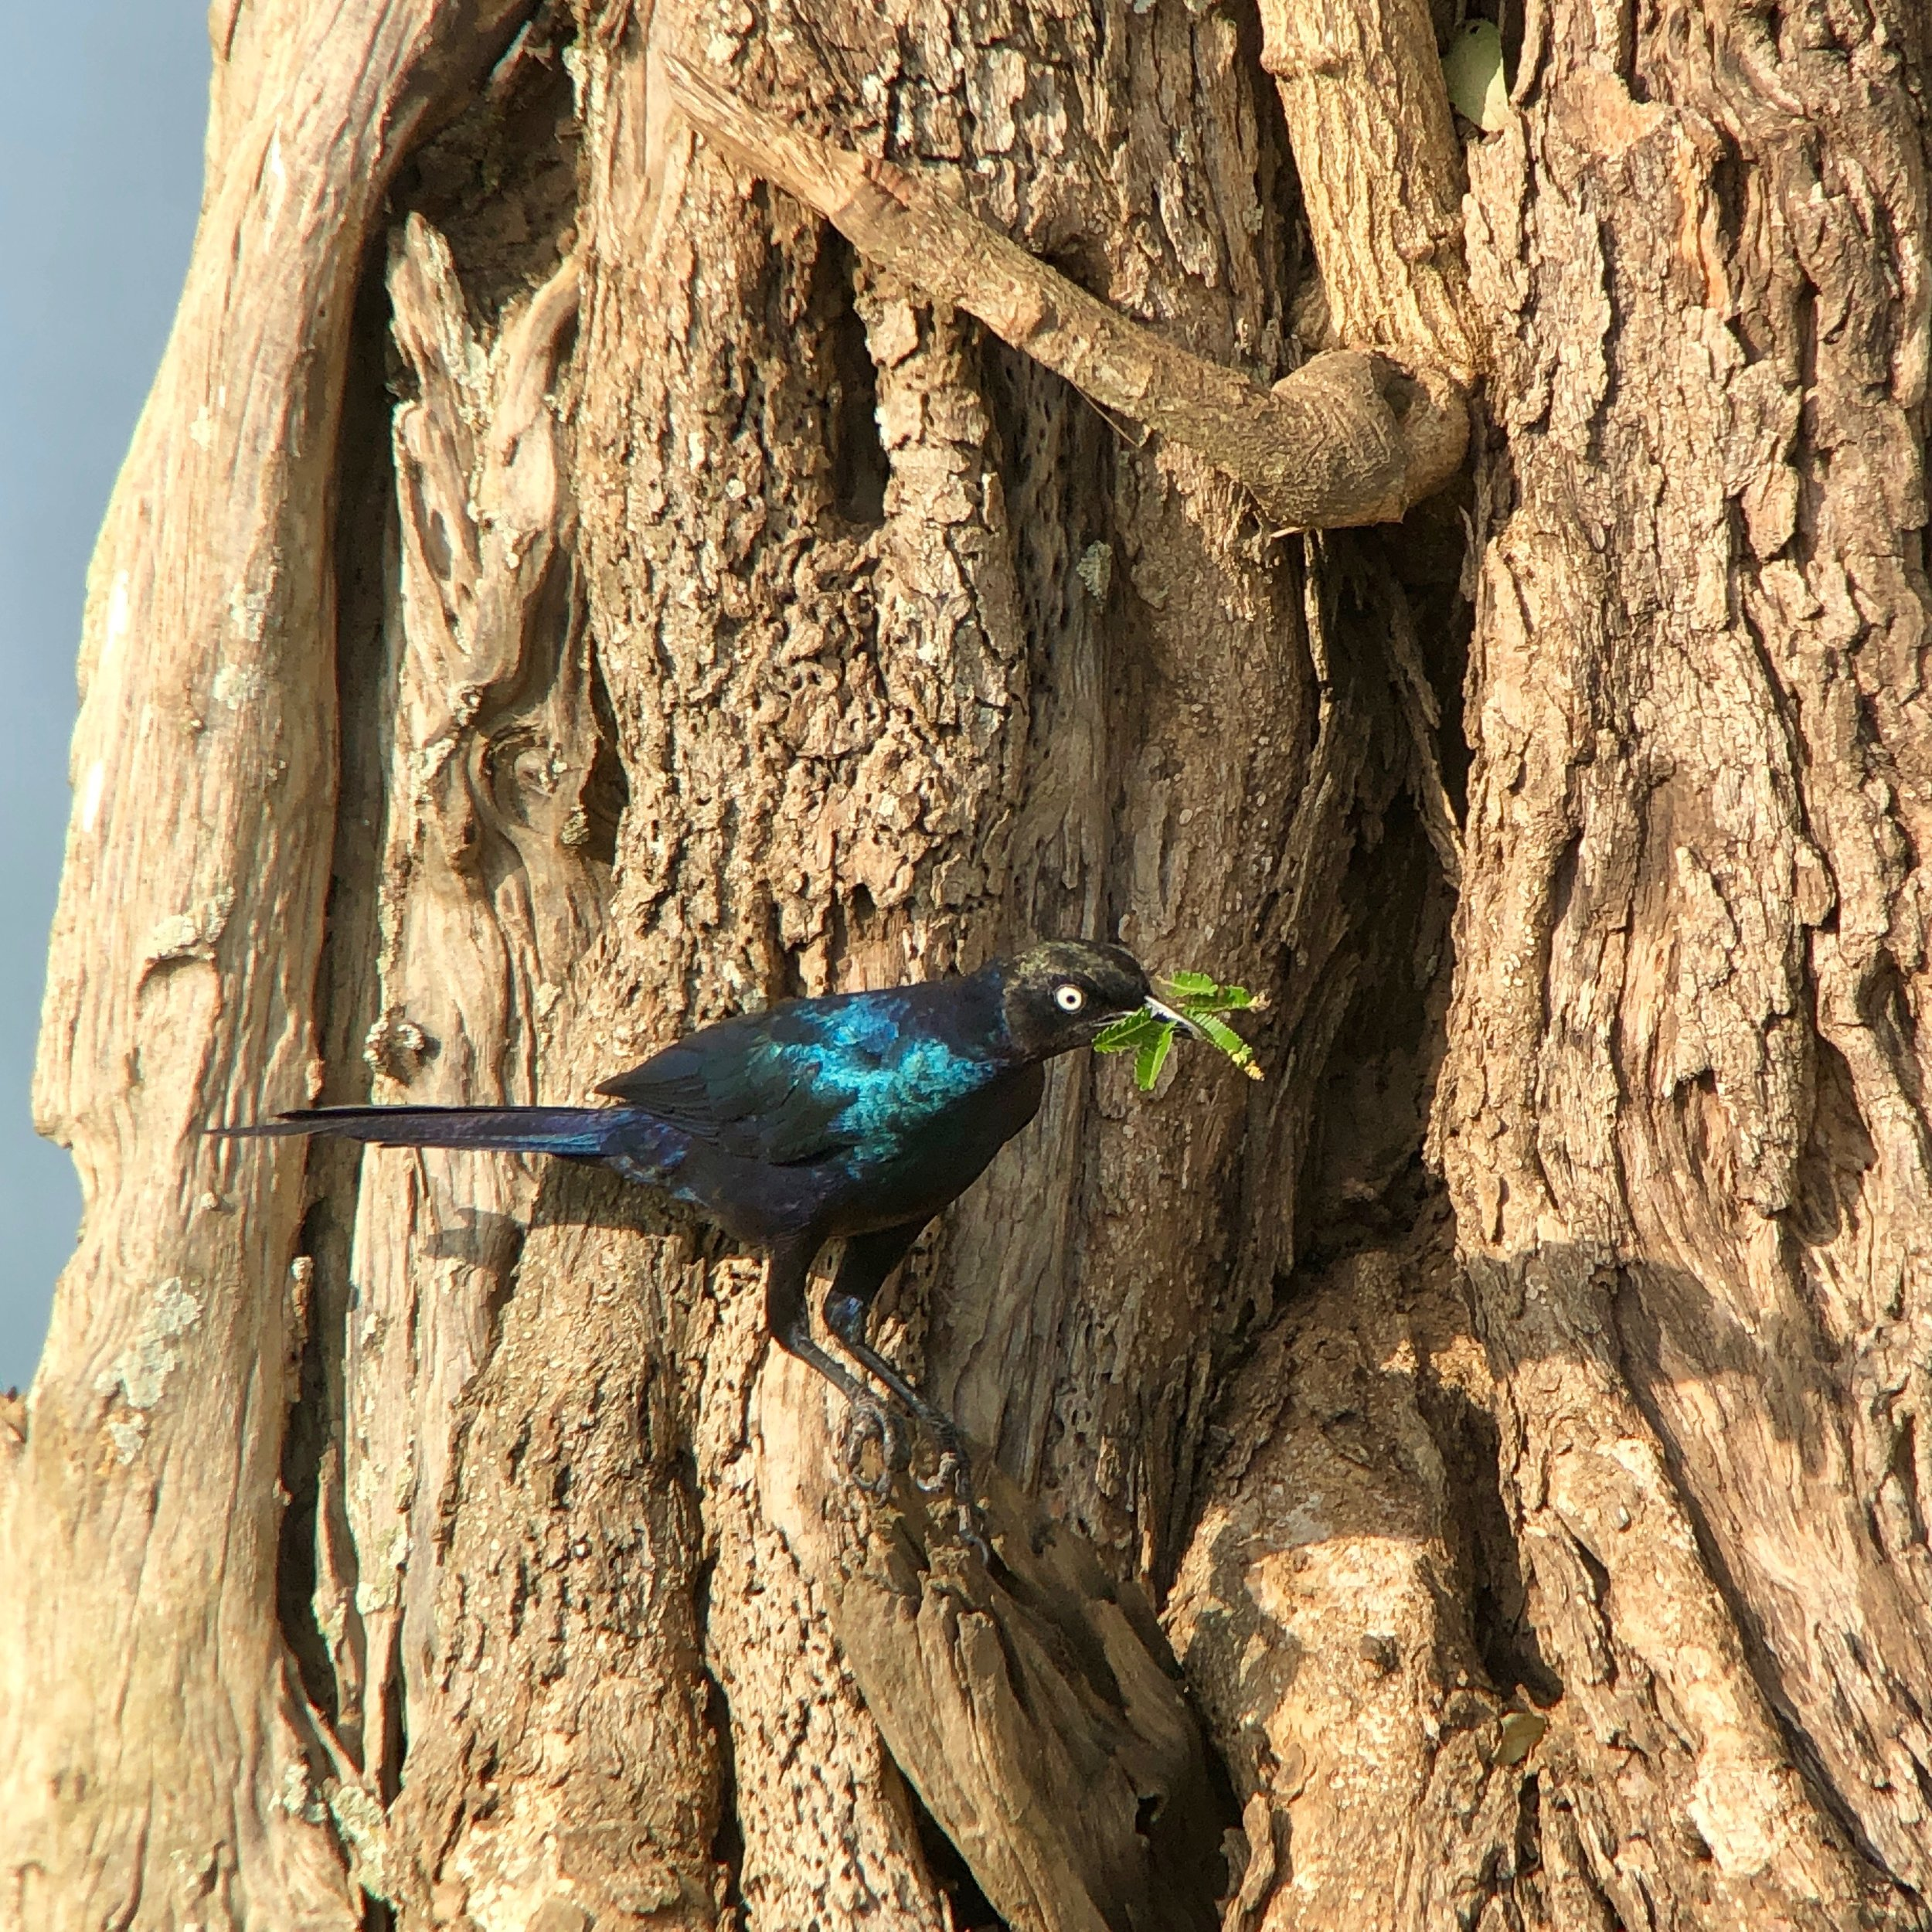 Rüppell's long-tailed starling adding material to a nesting cavity near the boat launch.